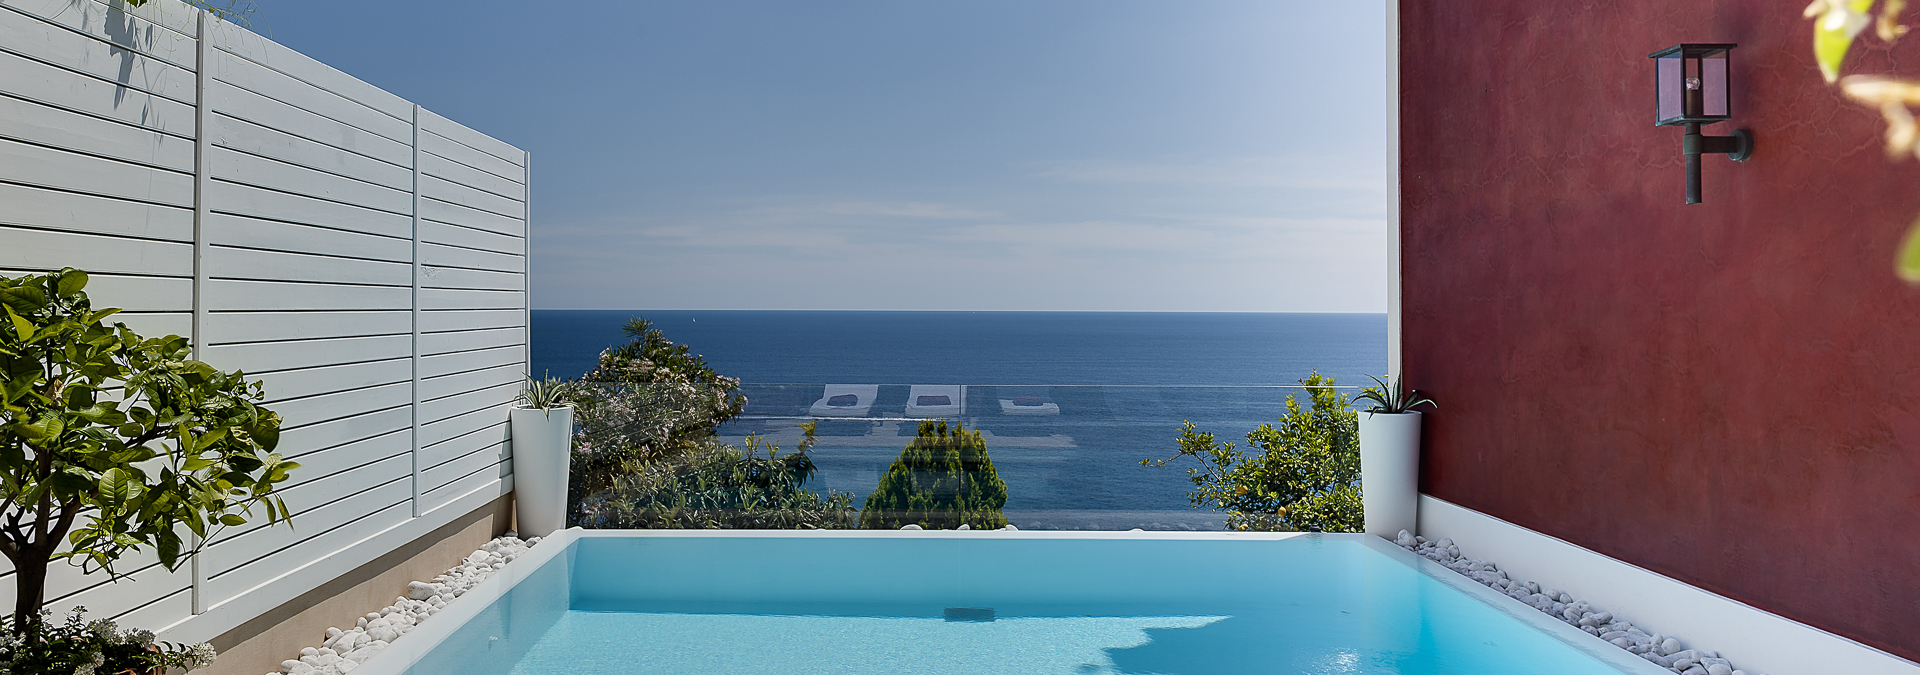 villa ferida- the art of simple luxury